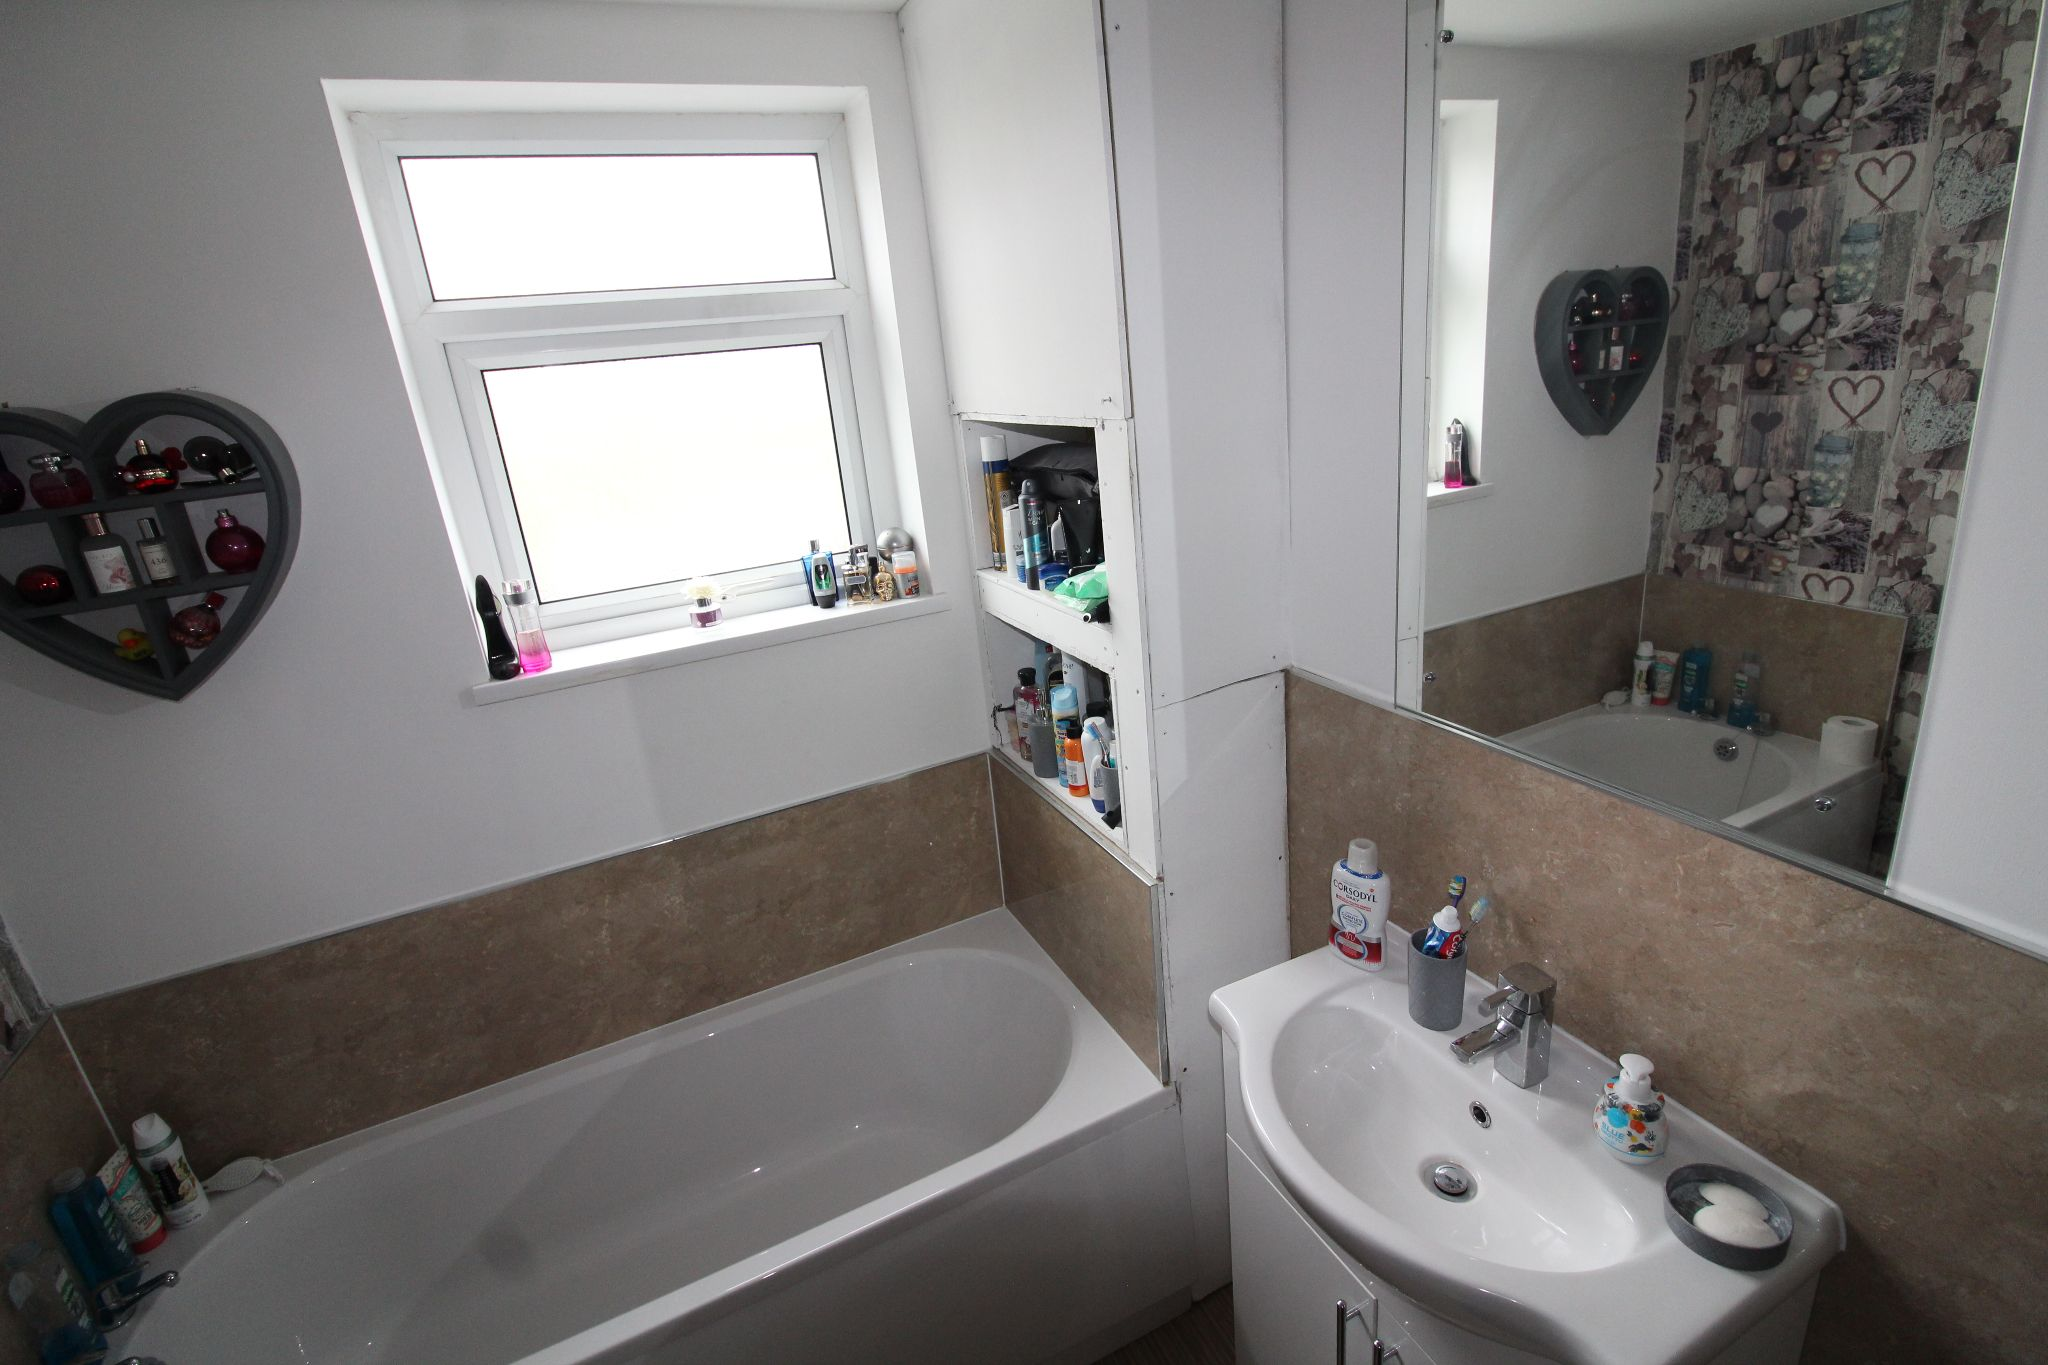 3 bedroom mid terraced house Sale Agreed in Roddymoor - Photograph 22.